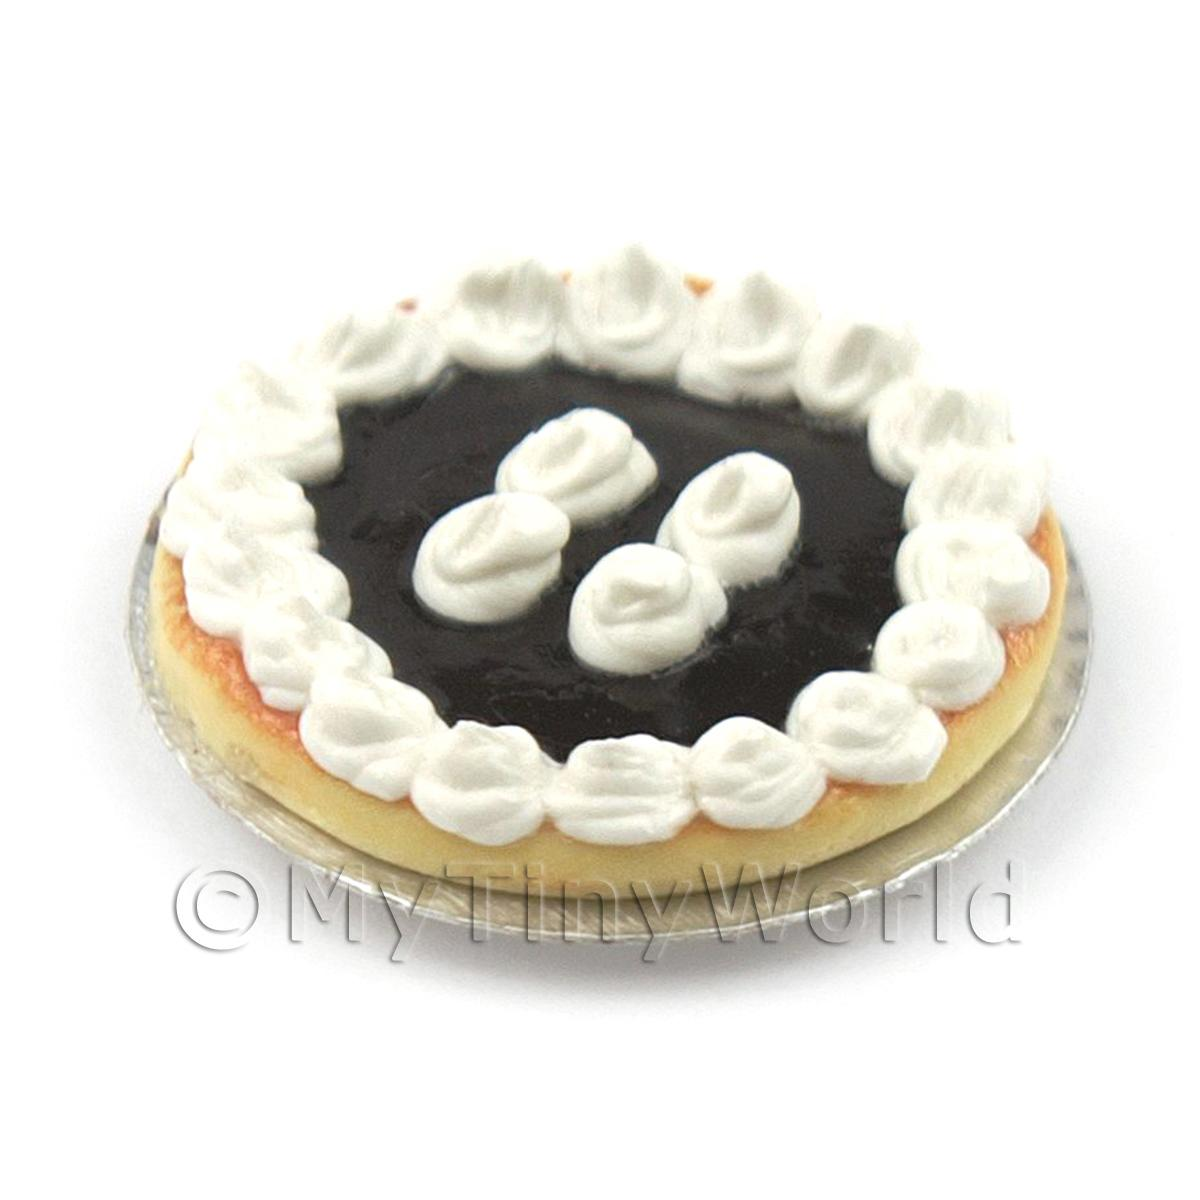 Dolls House Miniature Blackberry Tart With Fresh Whipped Cream Topping